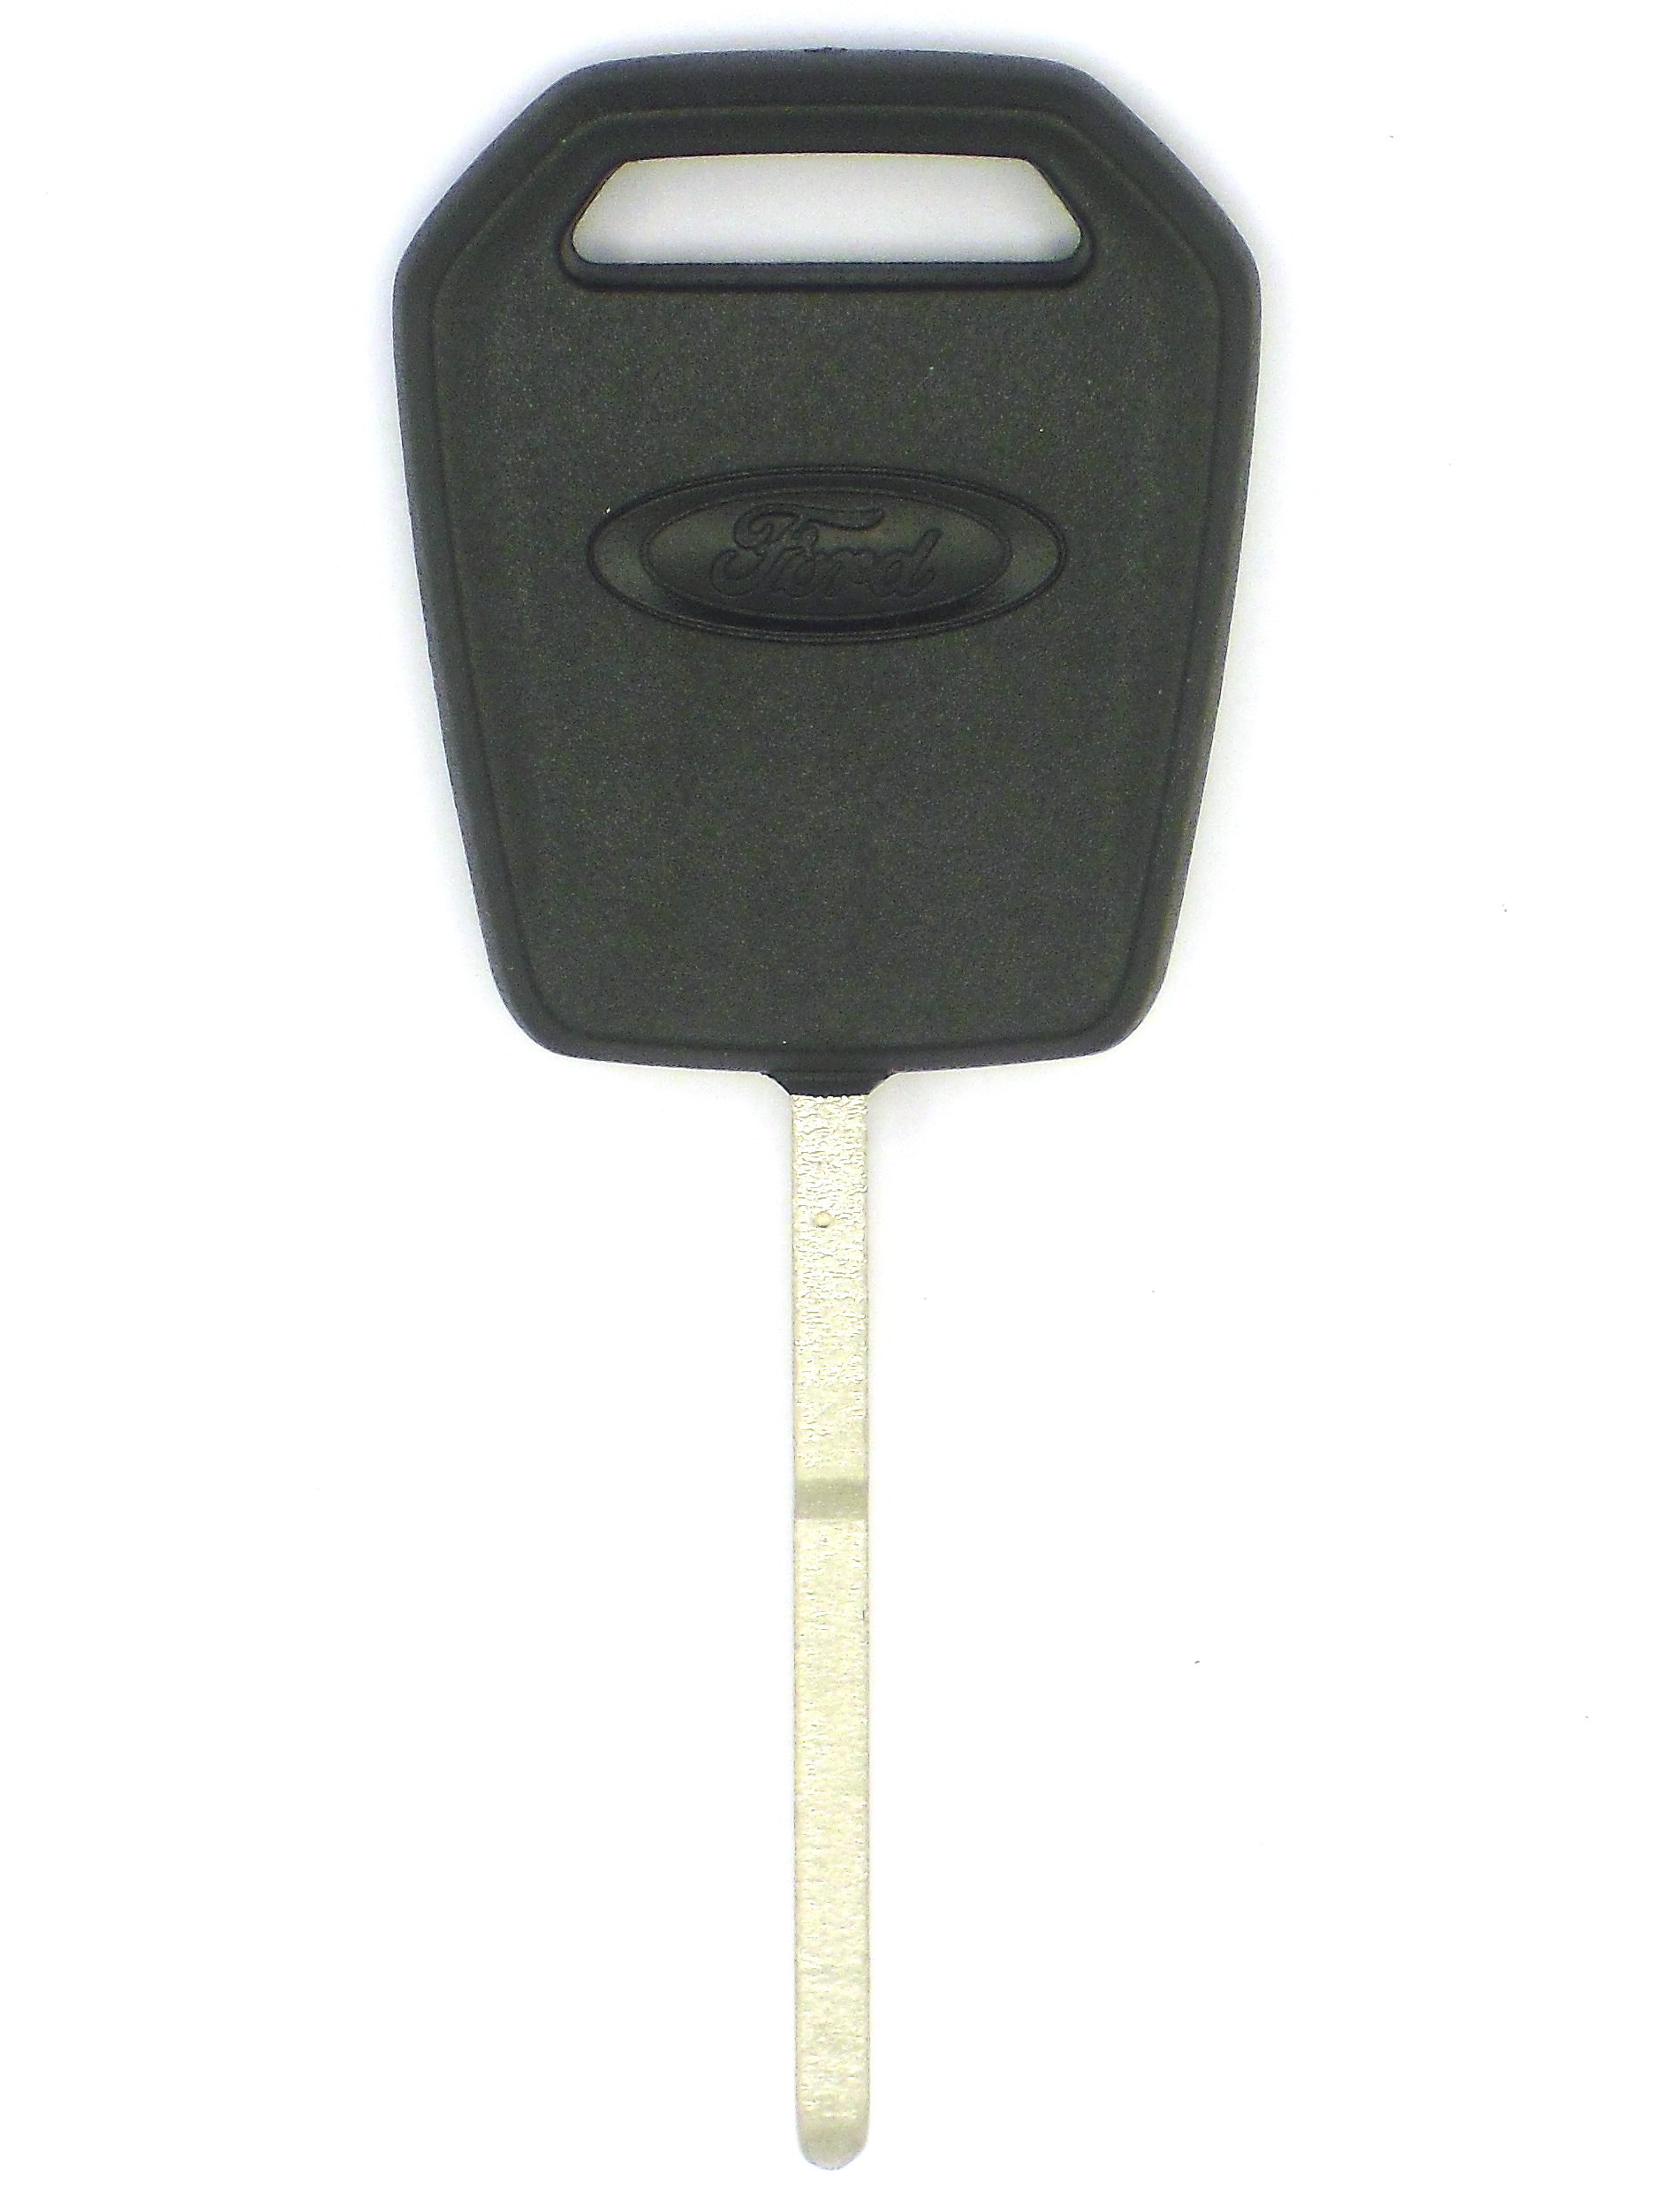 Ford Transponder Key - New/Uncut